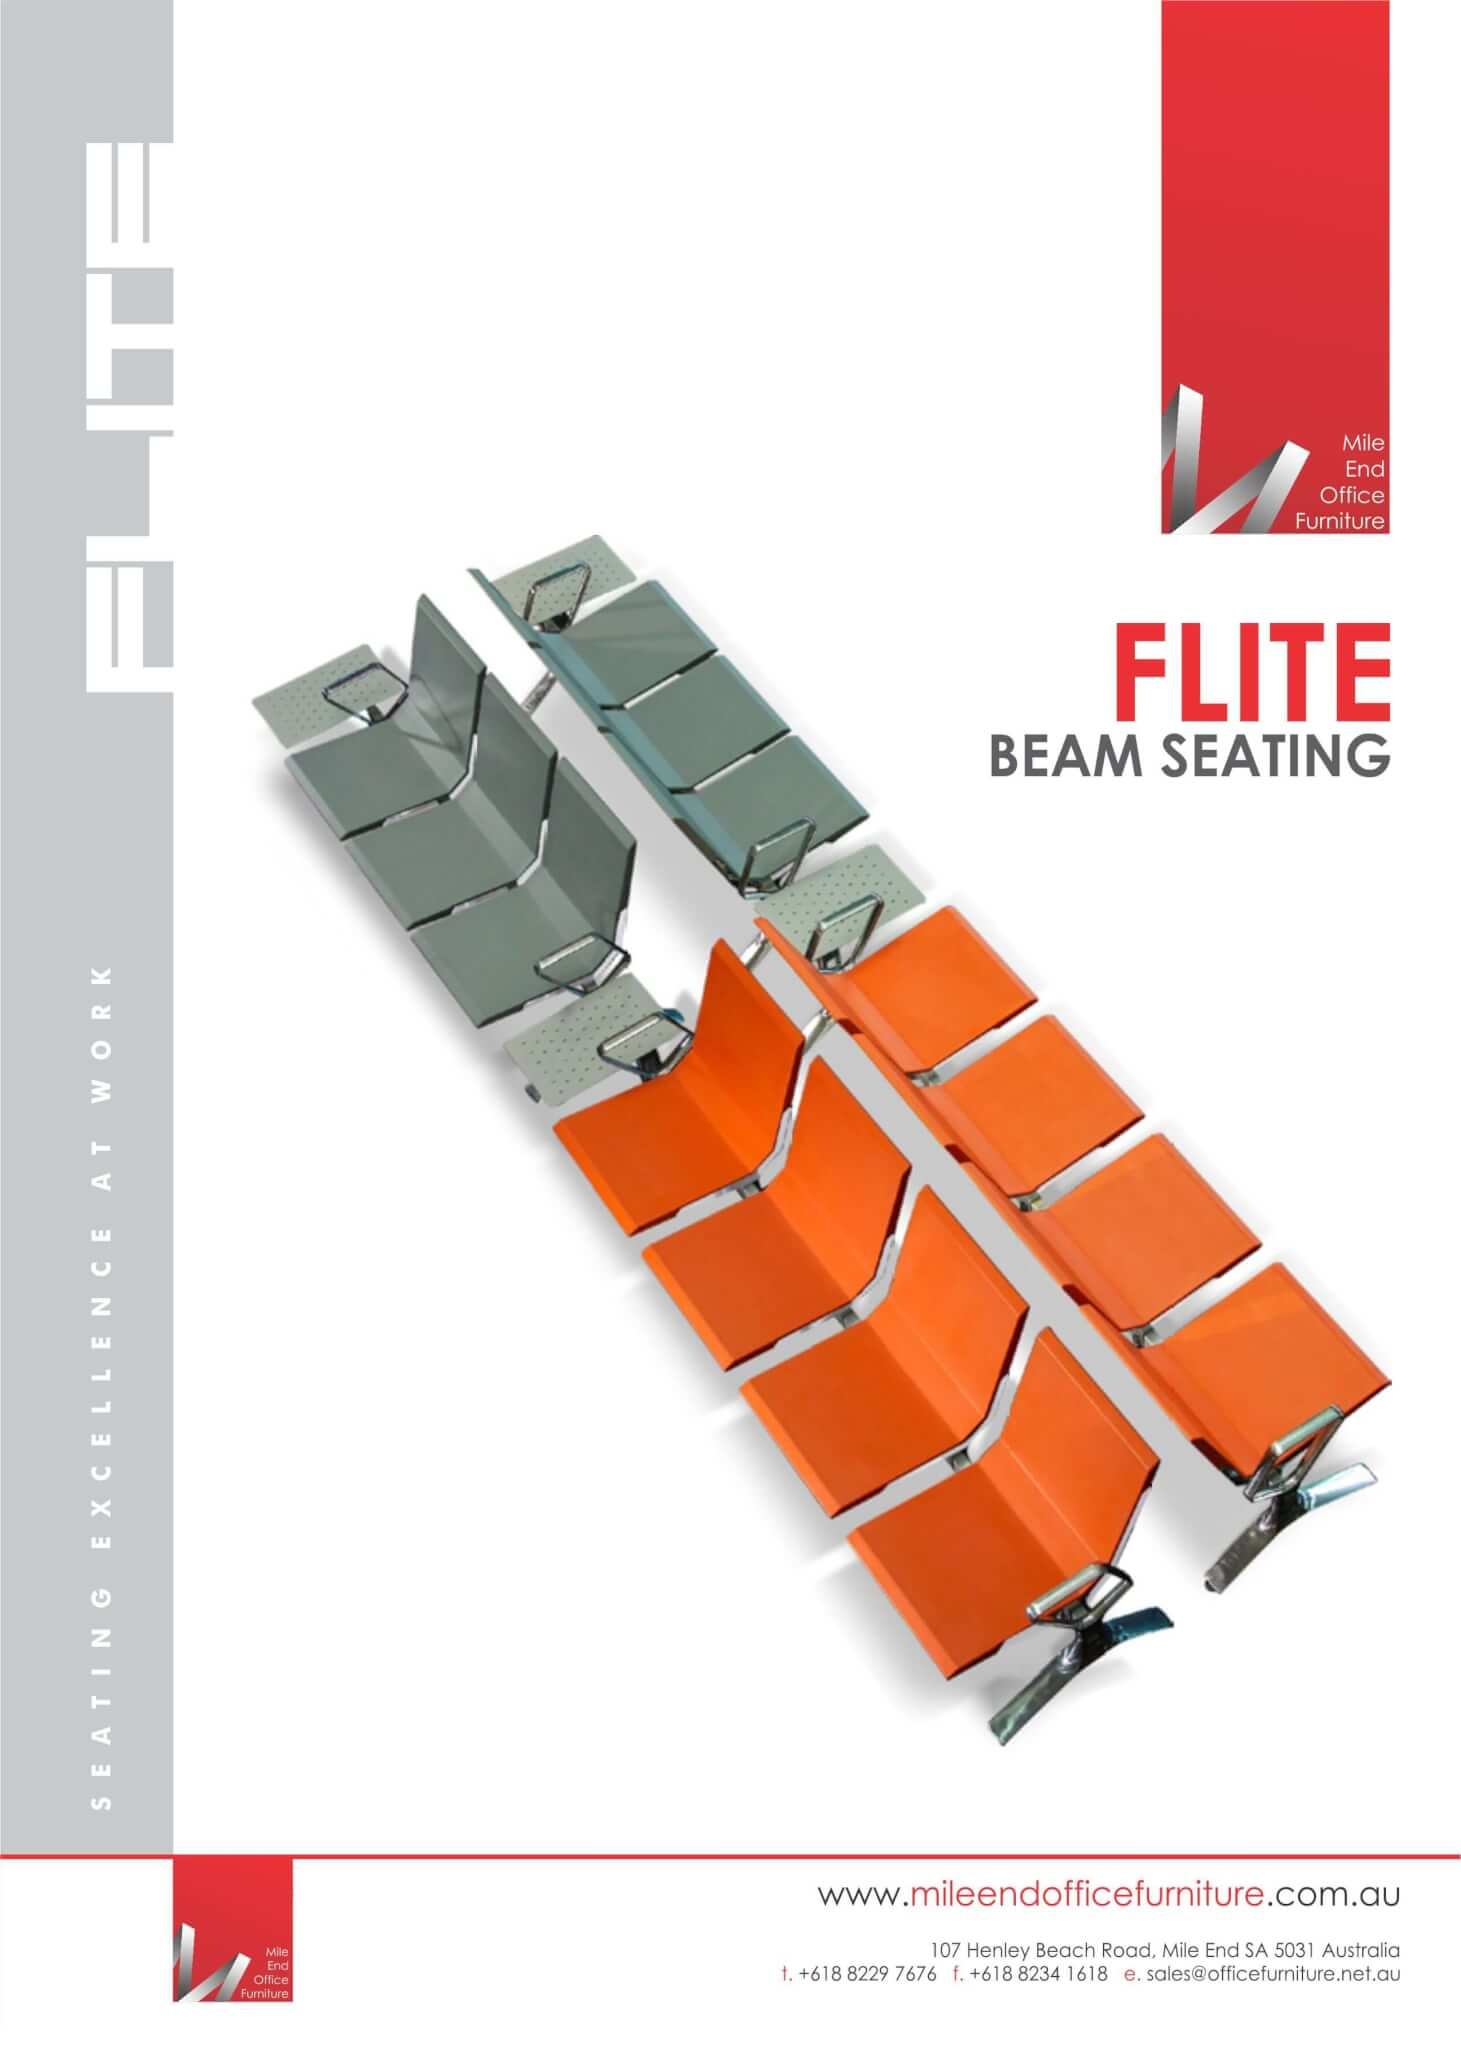 Flite Beam Seating